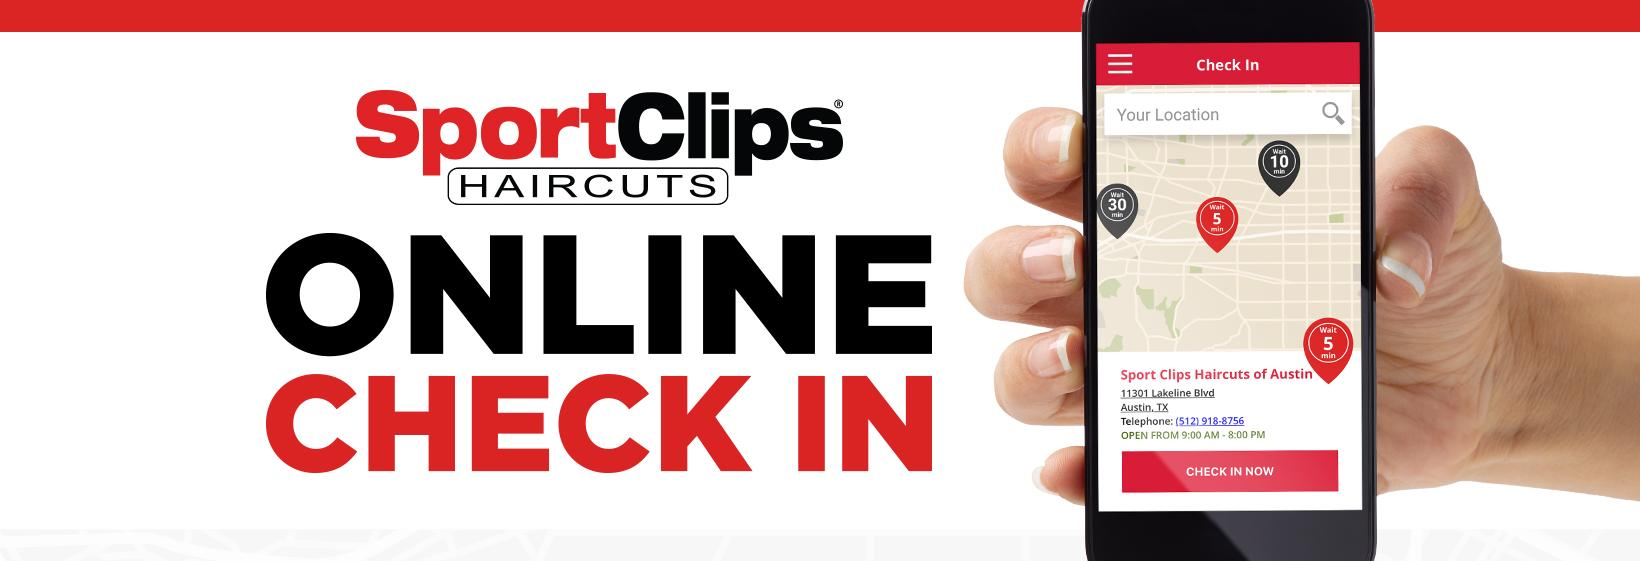 SportClips Haircuts online check-in using a smartphone